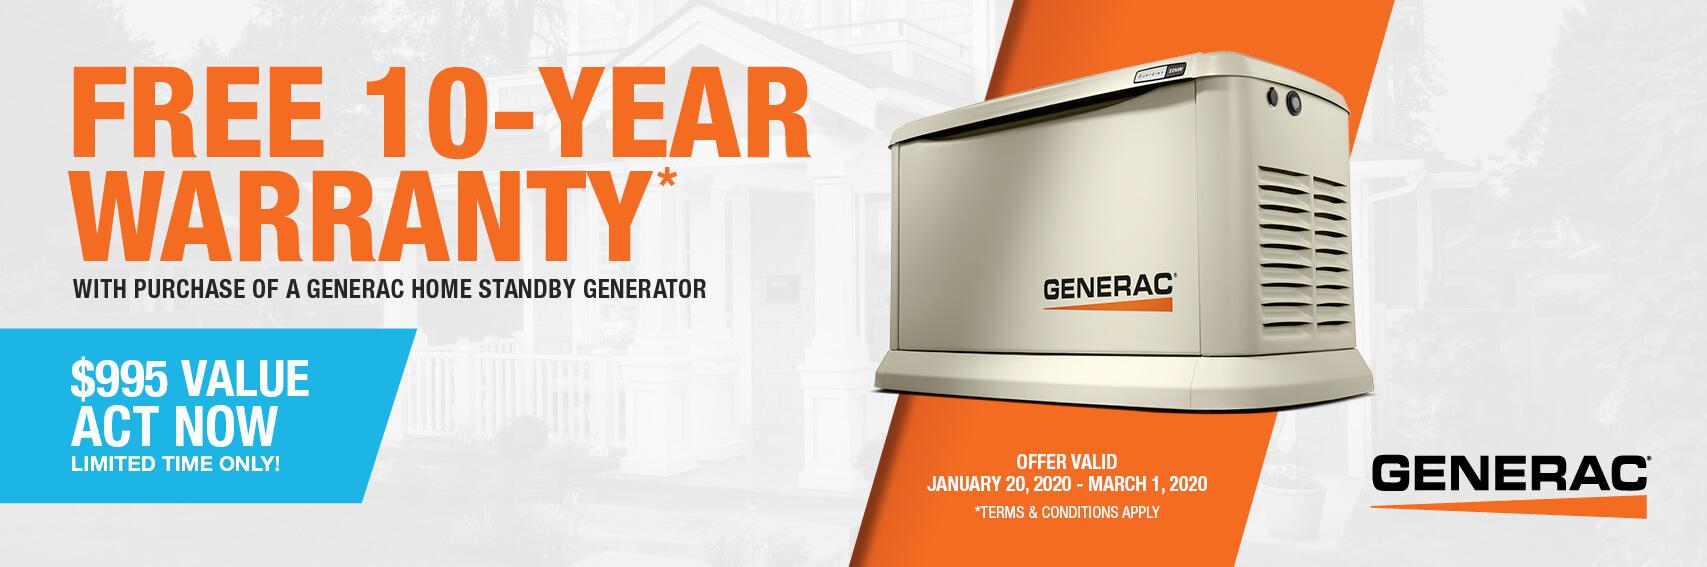 Homestandby Generator Deal | Warranty Offer | Generac Dealer | Knoxville, TN